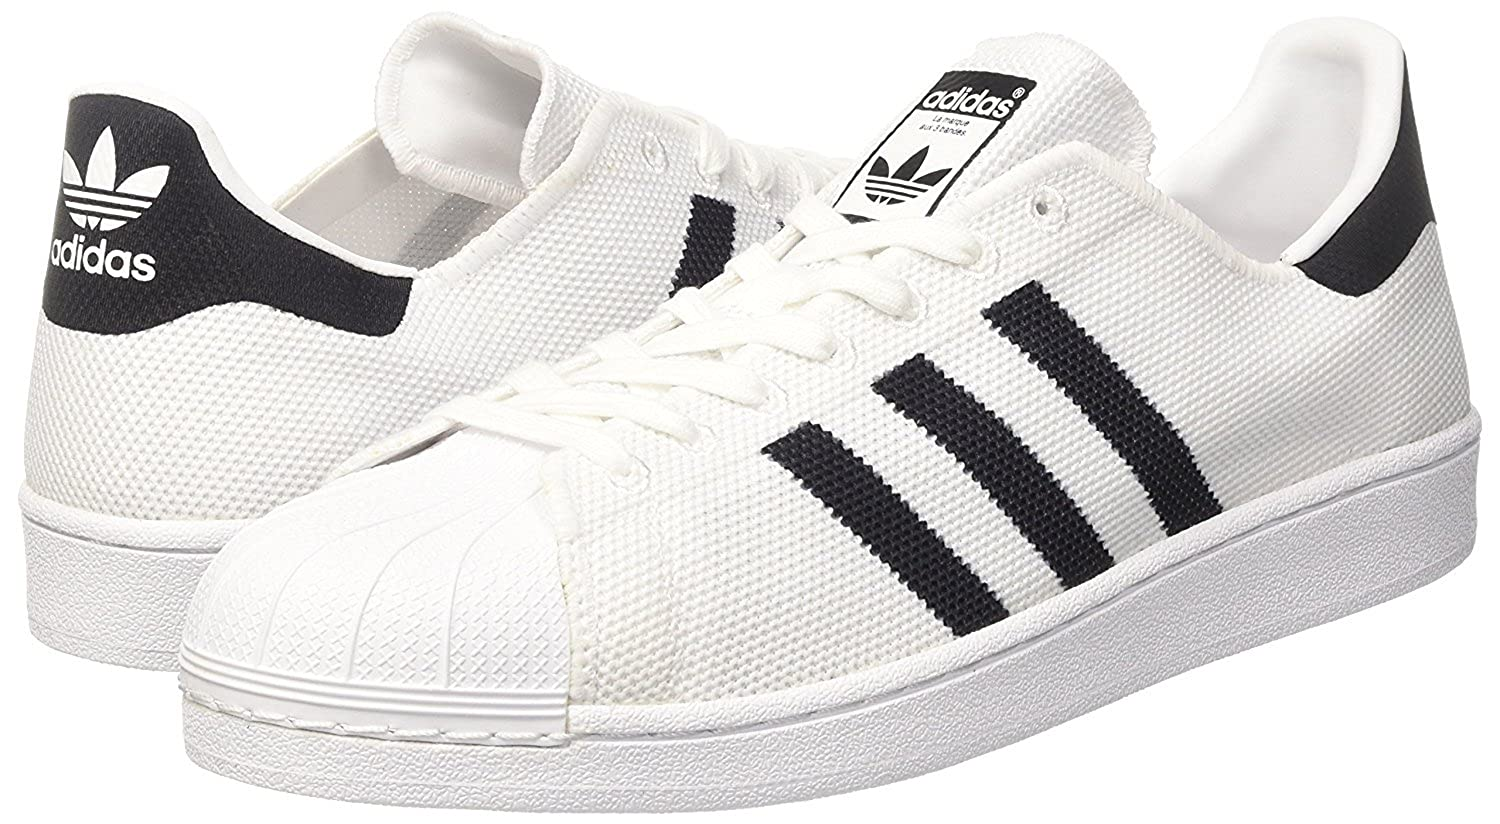 9f2003ff61b0c adidas Originals Mens Superstar Knit Shell Toe Trainers - 9 US White, Black